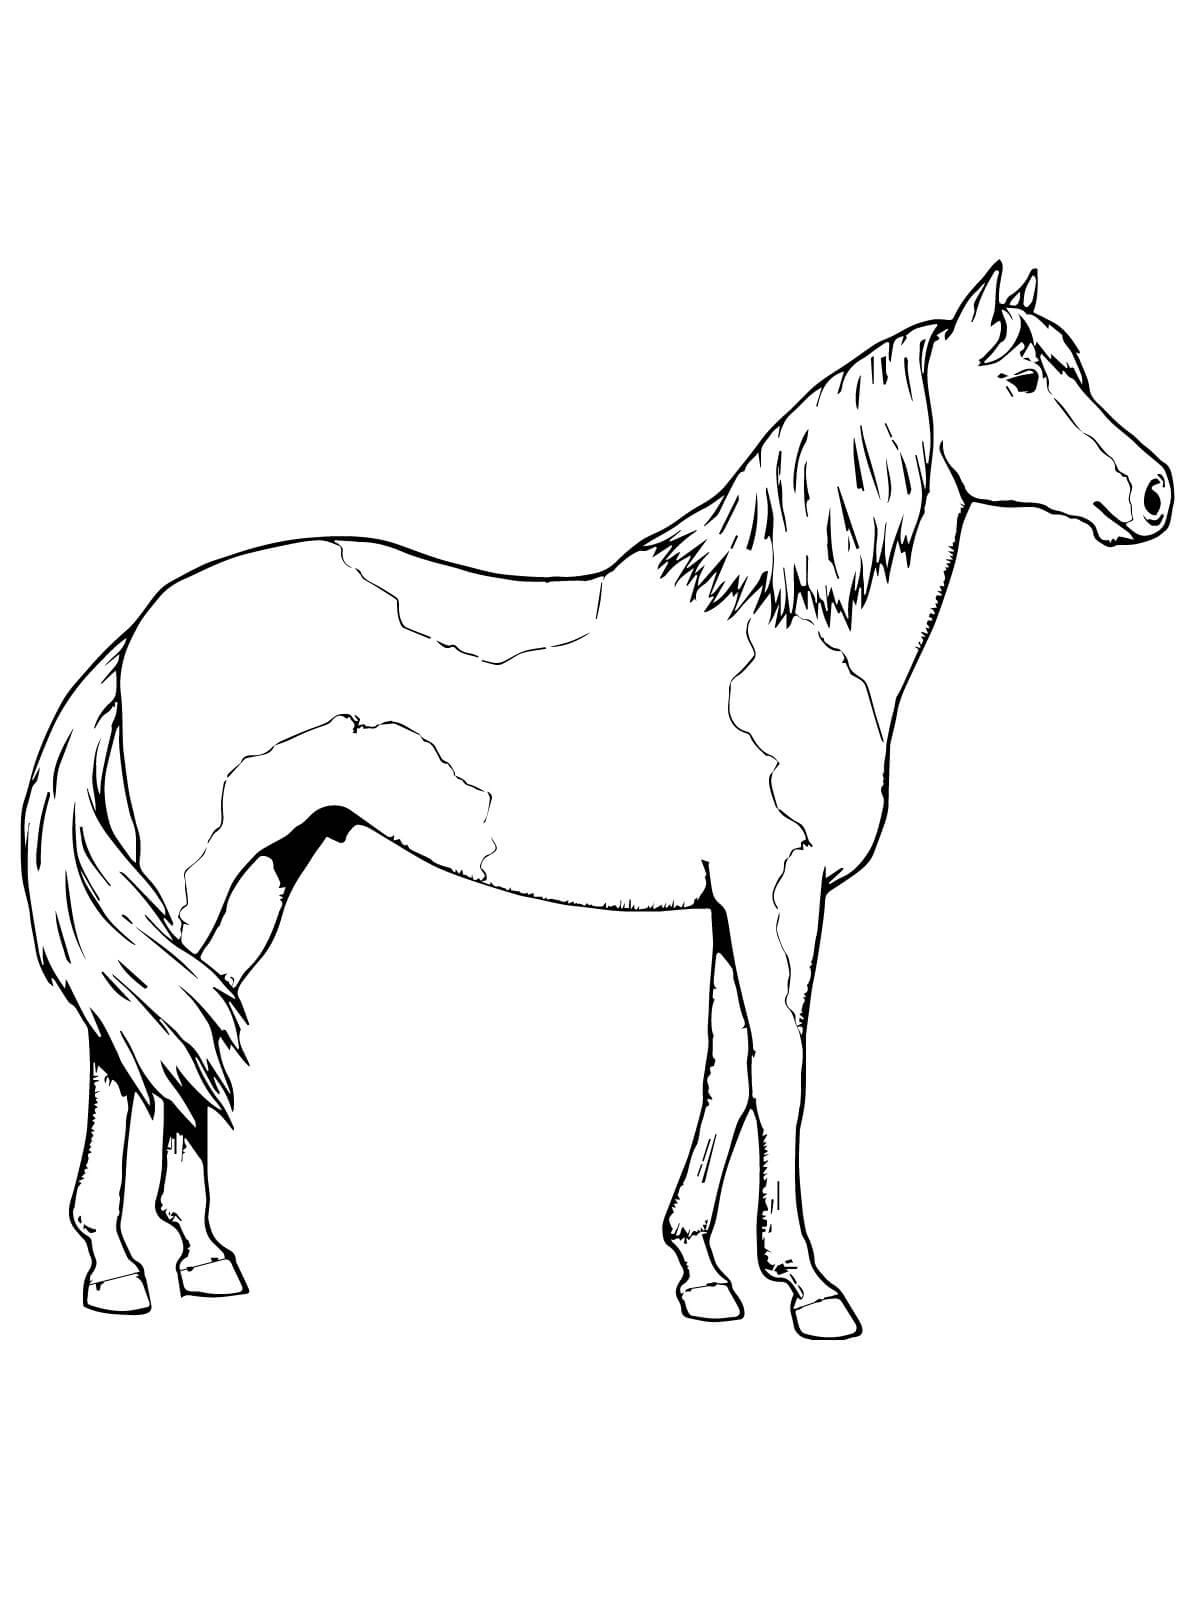 horse coloring pages for kids horse free to color for children trotting horse horses for coloring kids pages horse